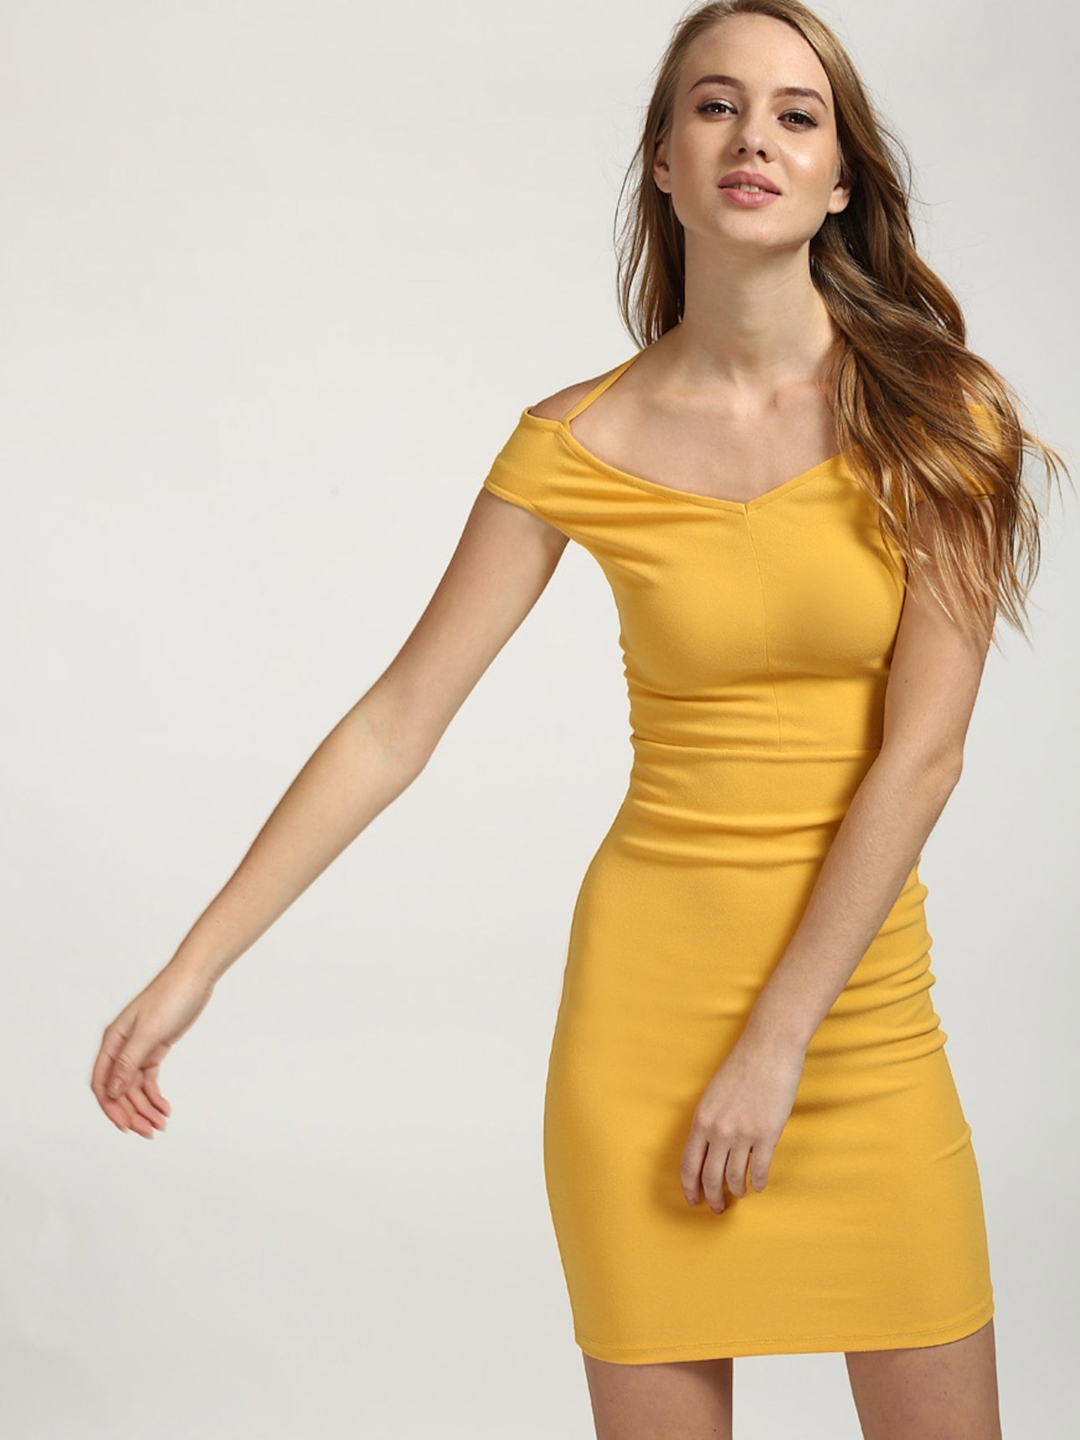 a9ecfe52ac Buy StalkBuyLove Women Yellow Solid Bodycon Dress - Dresses for ...